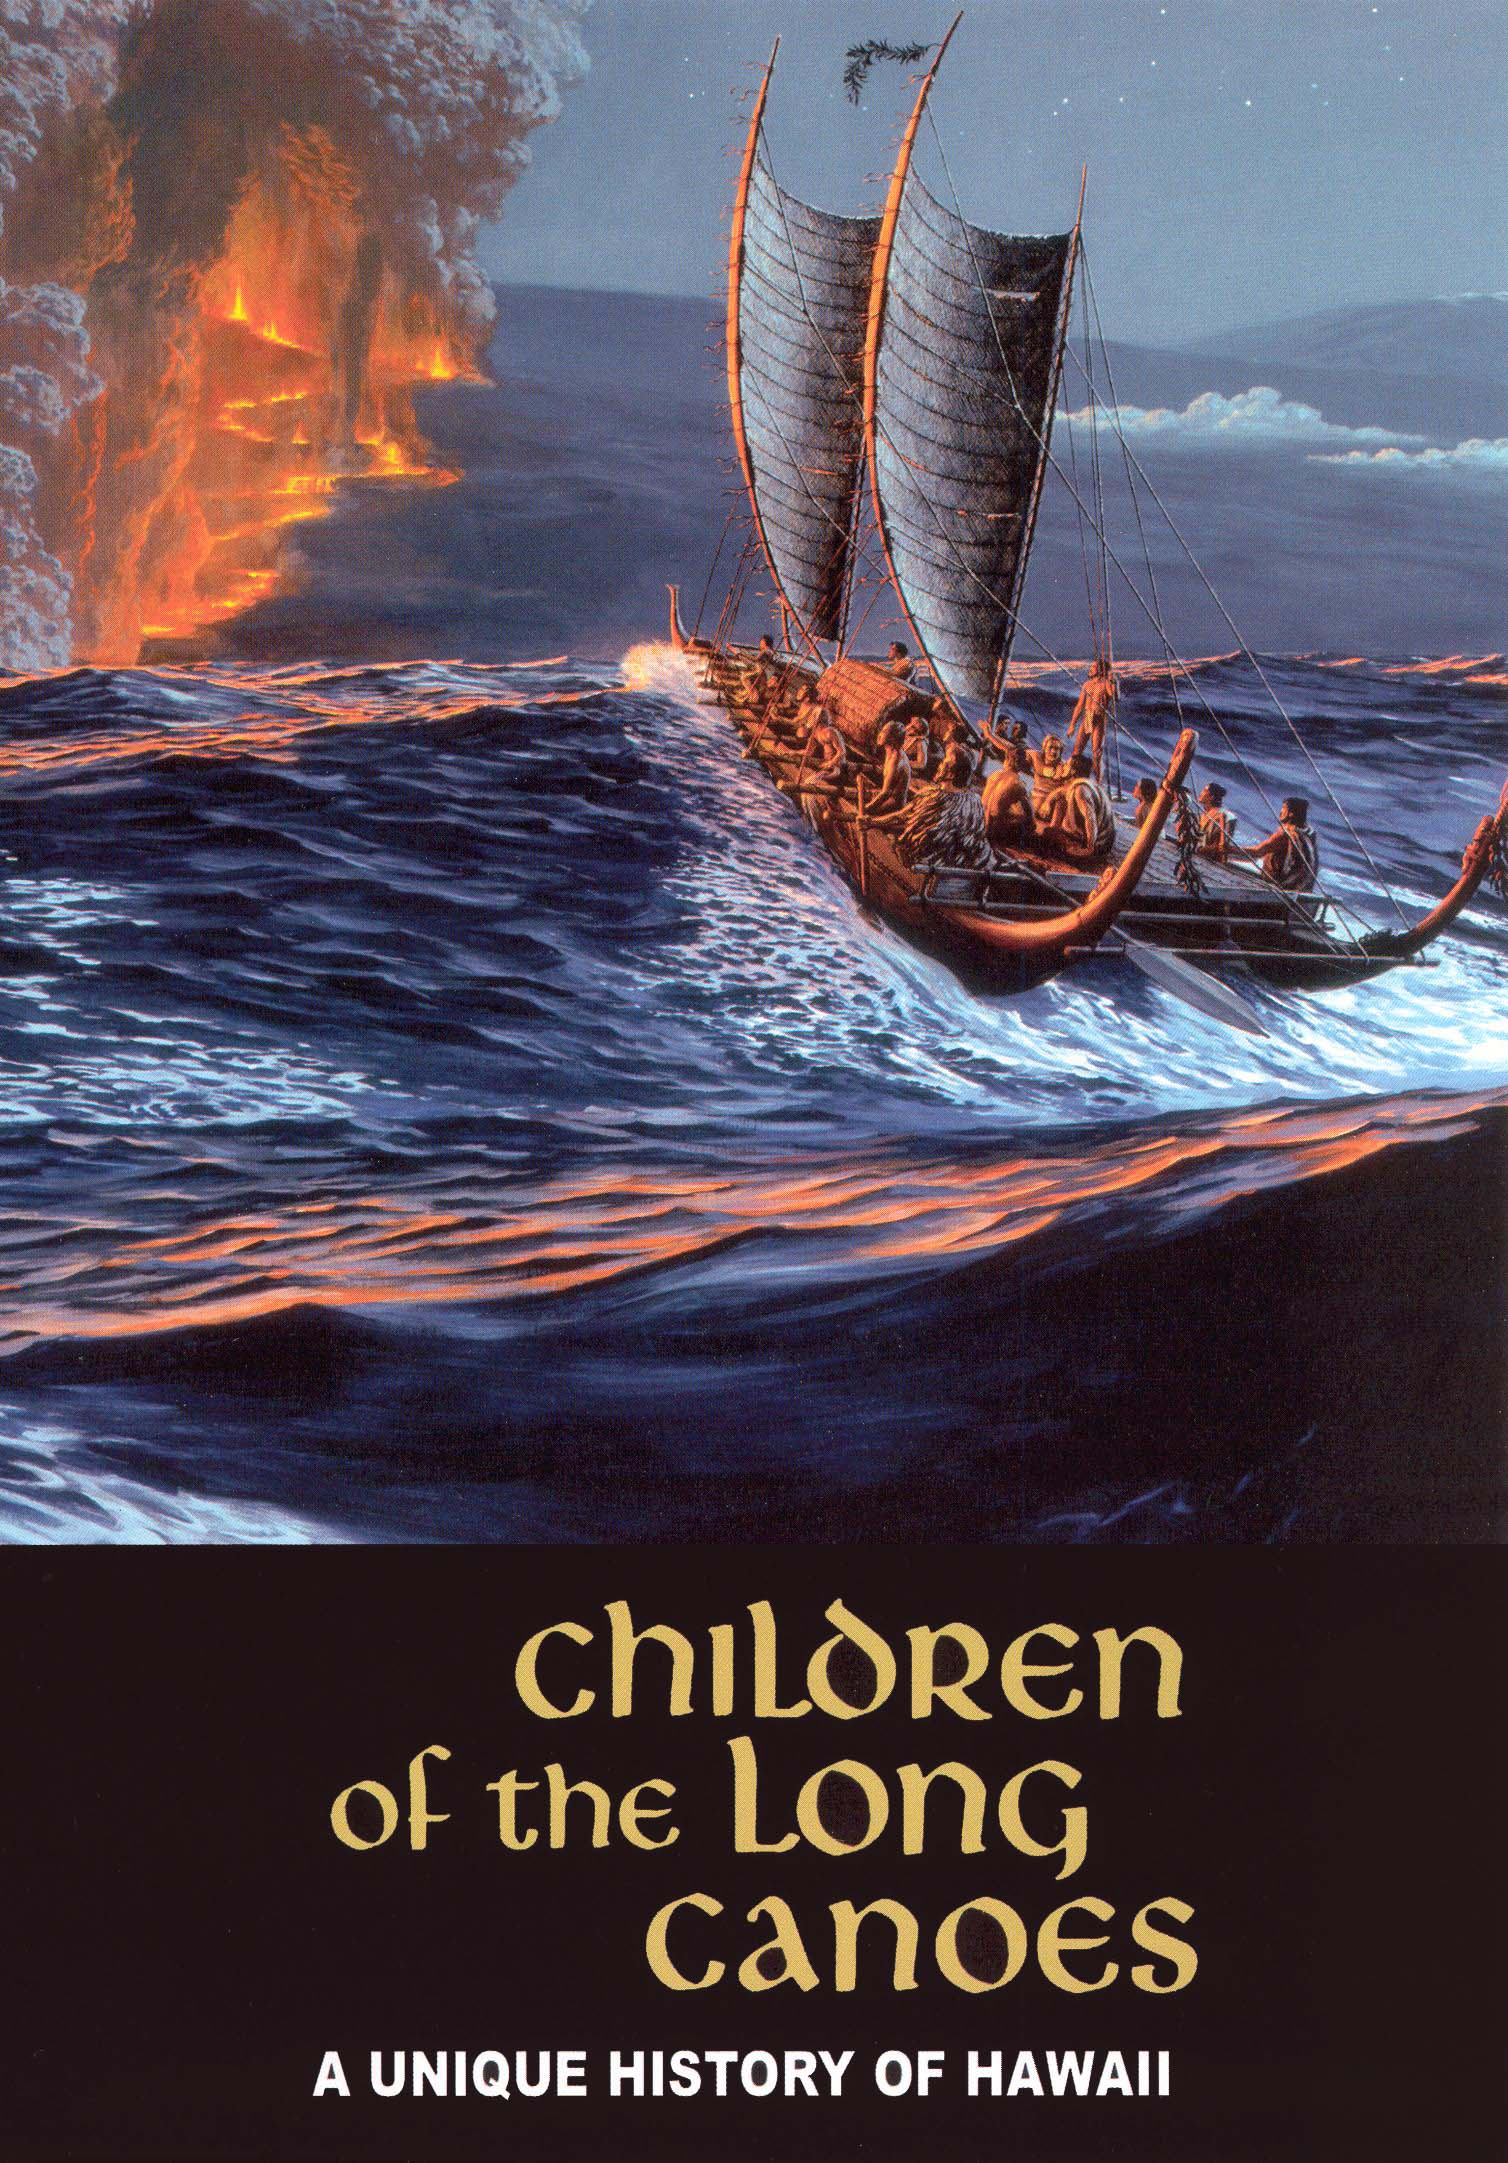 Children of the Long Canoes